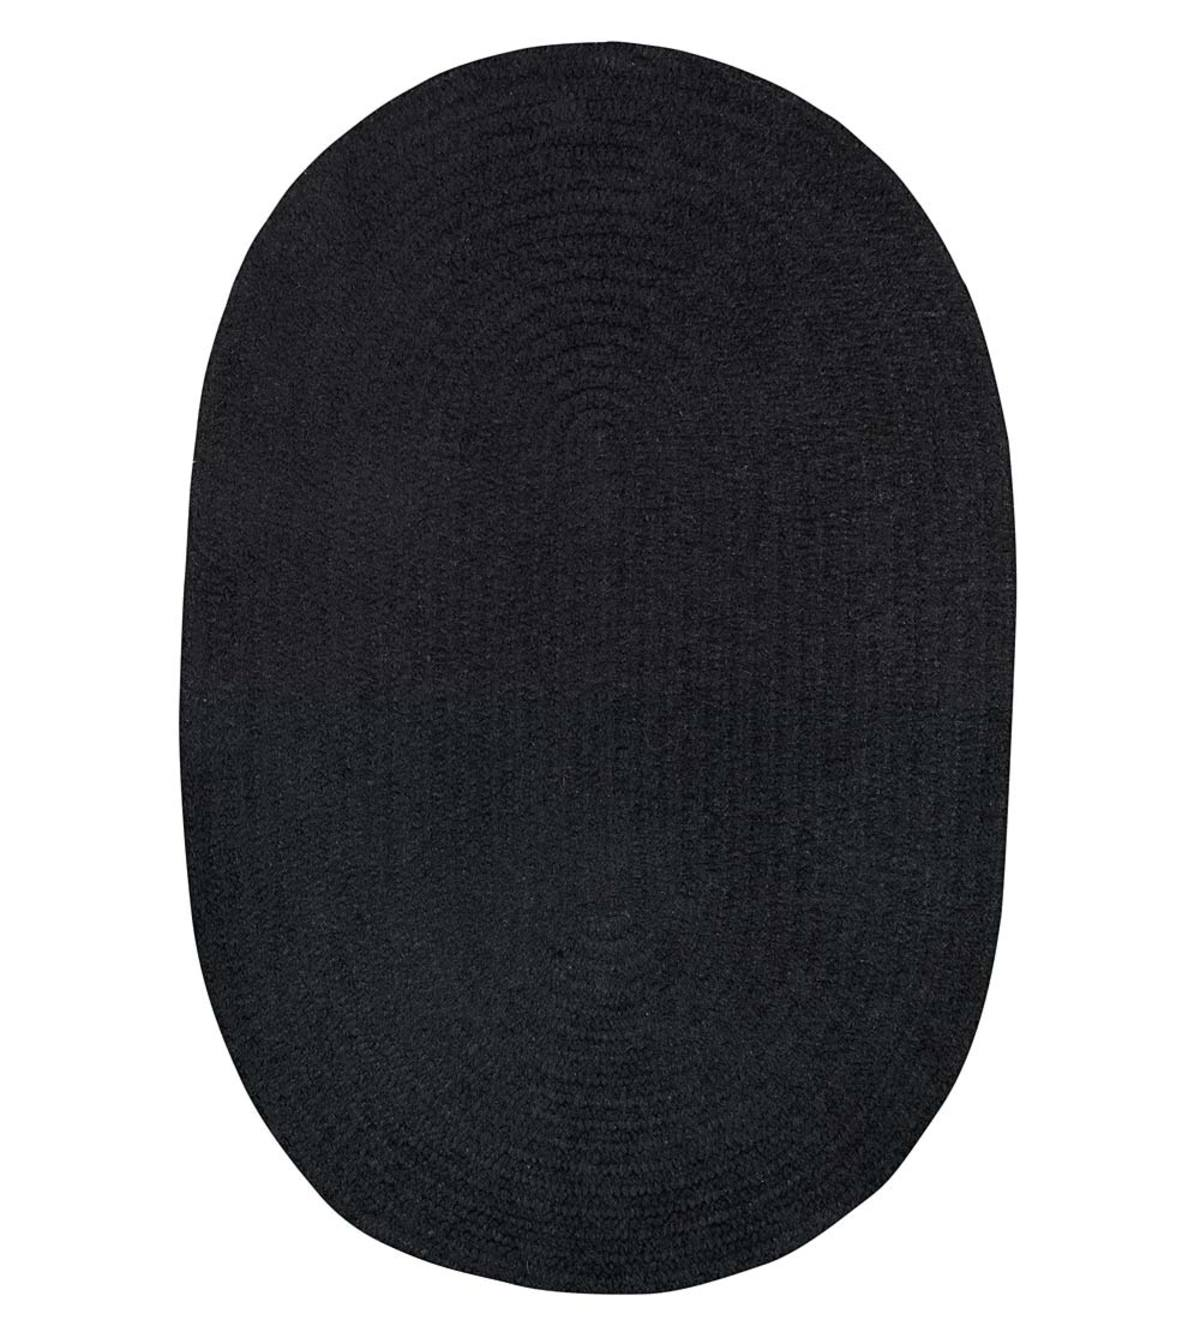 Chenille Oval Braided Area Rug, 5' x 8' - Shadow Black